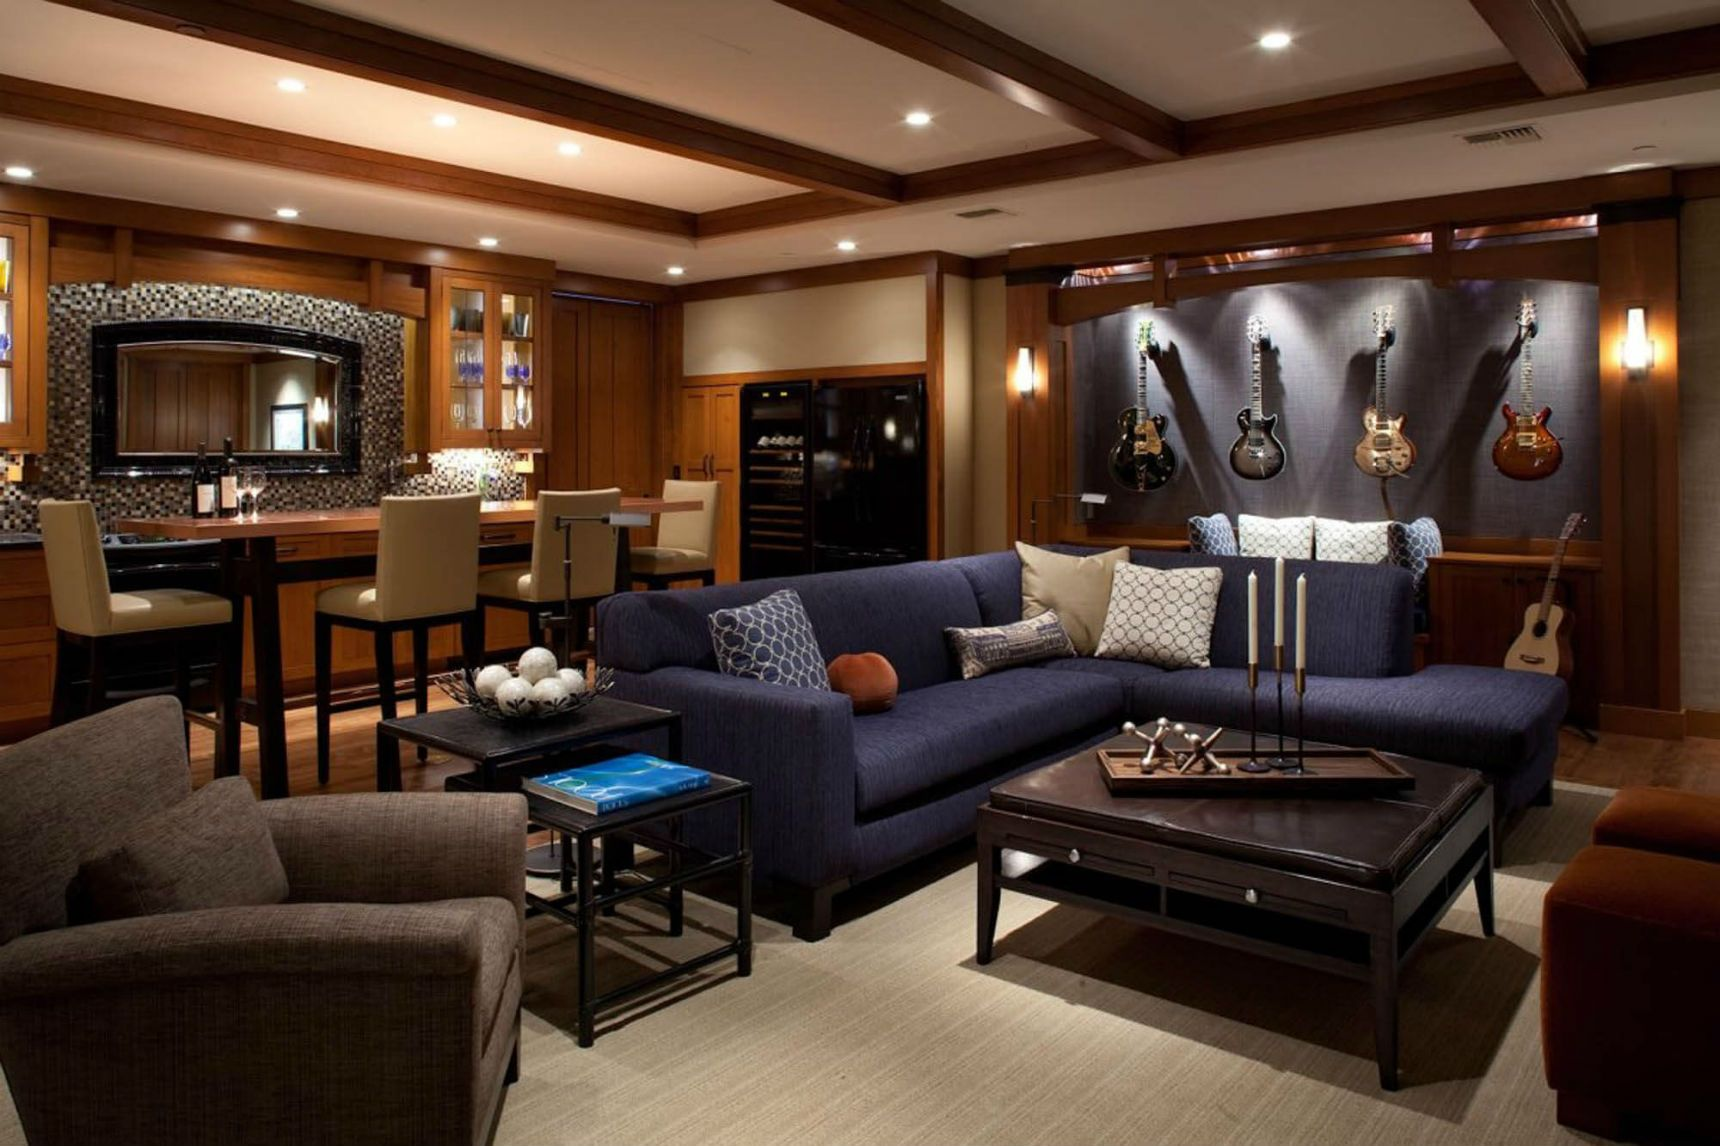 12 Must-Have Items For The Perfect Man Cave